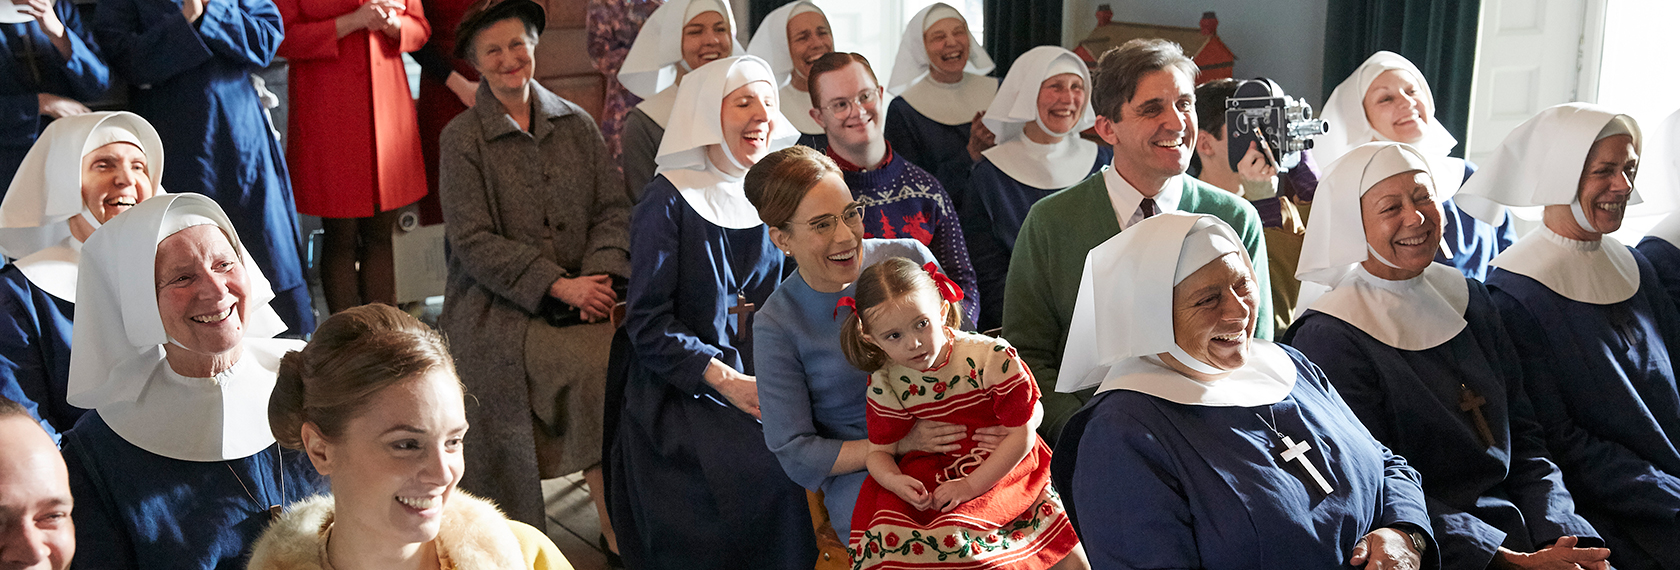 Call the Midwife Holiday Special 2018 - lg slider